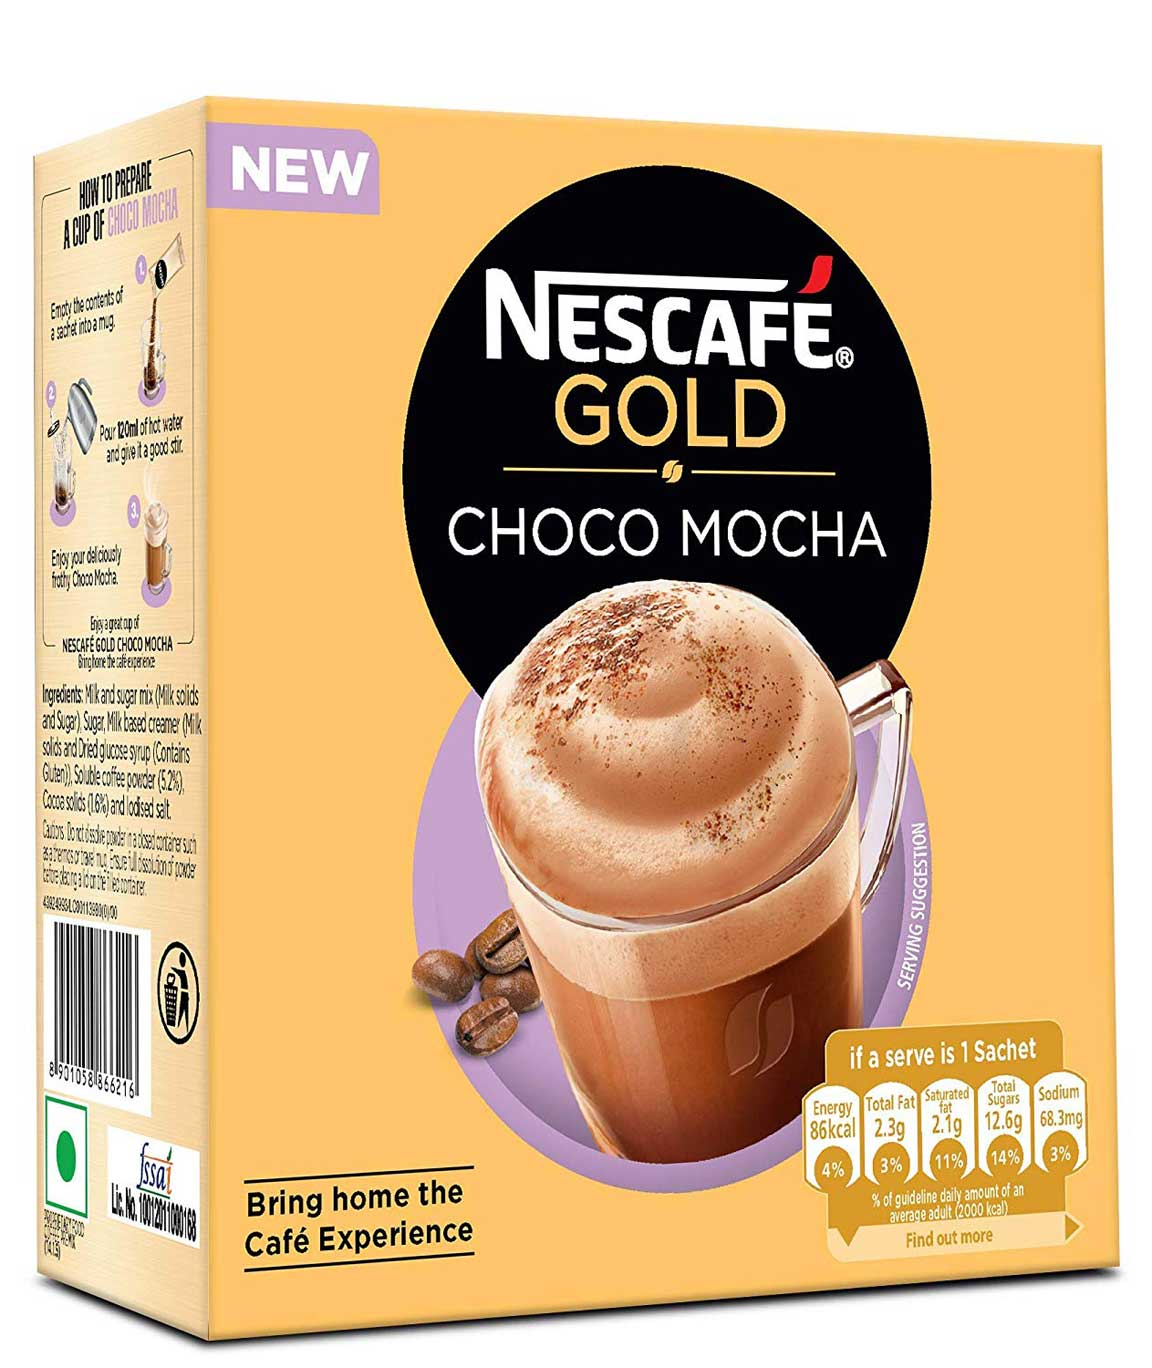 Nescafe Dolce Gusto Grande, Pack of 3 (Total 48 Capsules, 48 Servings)